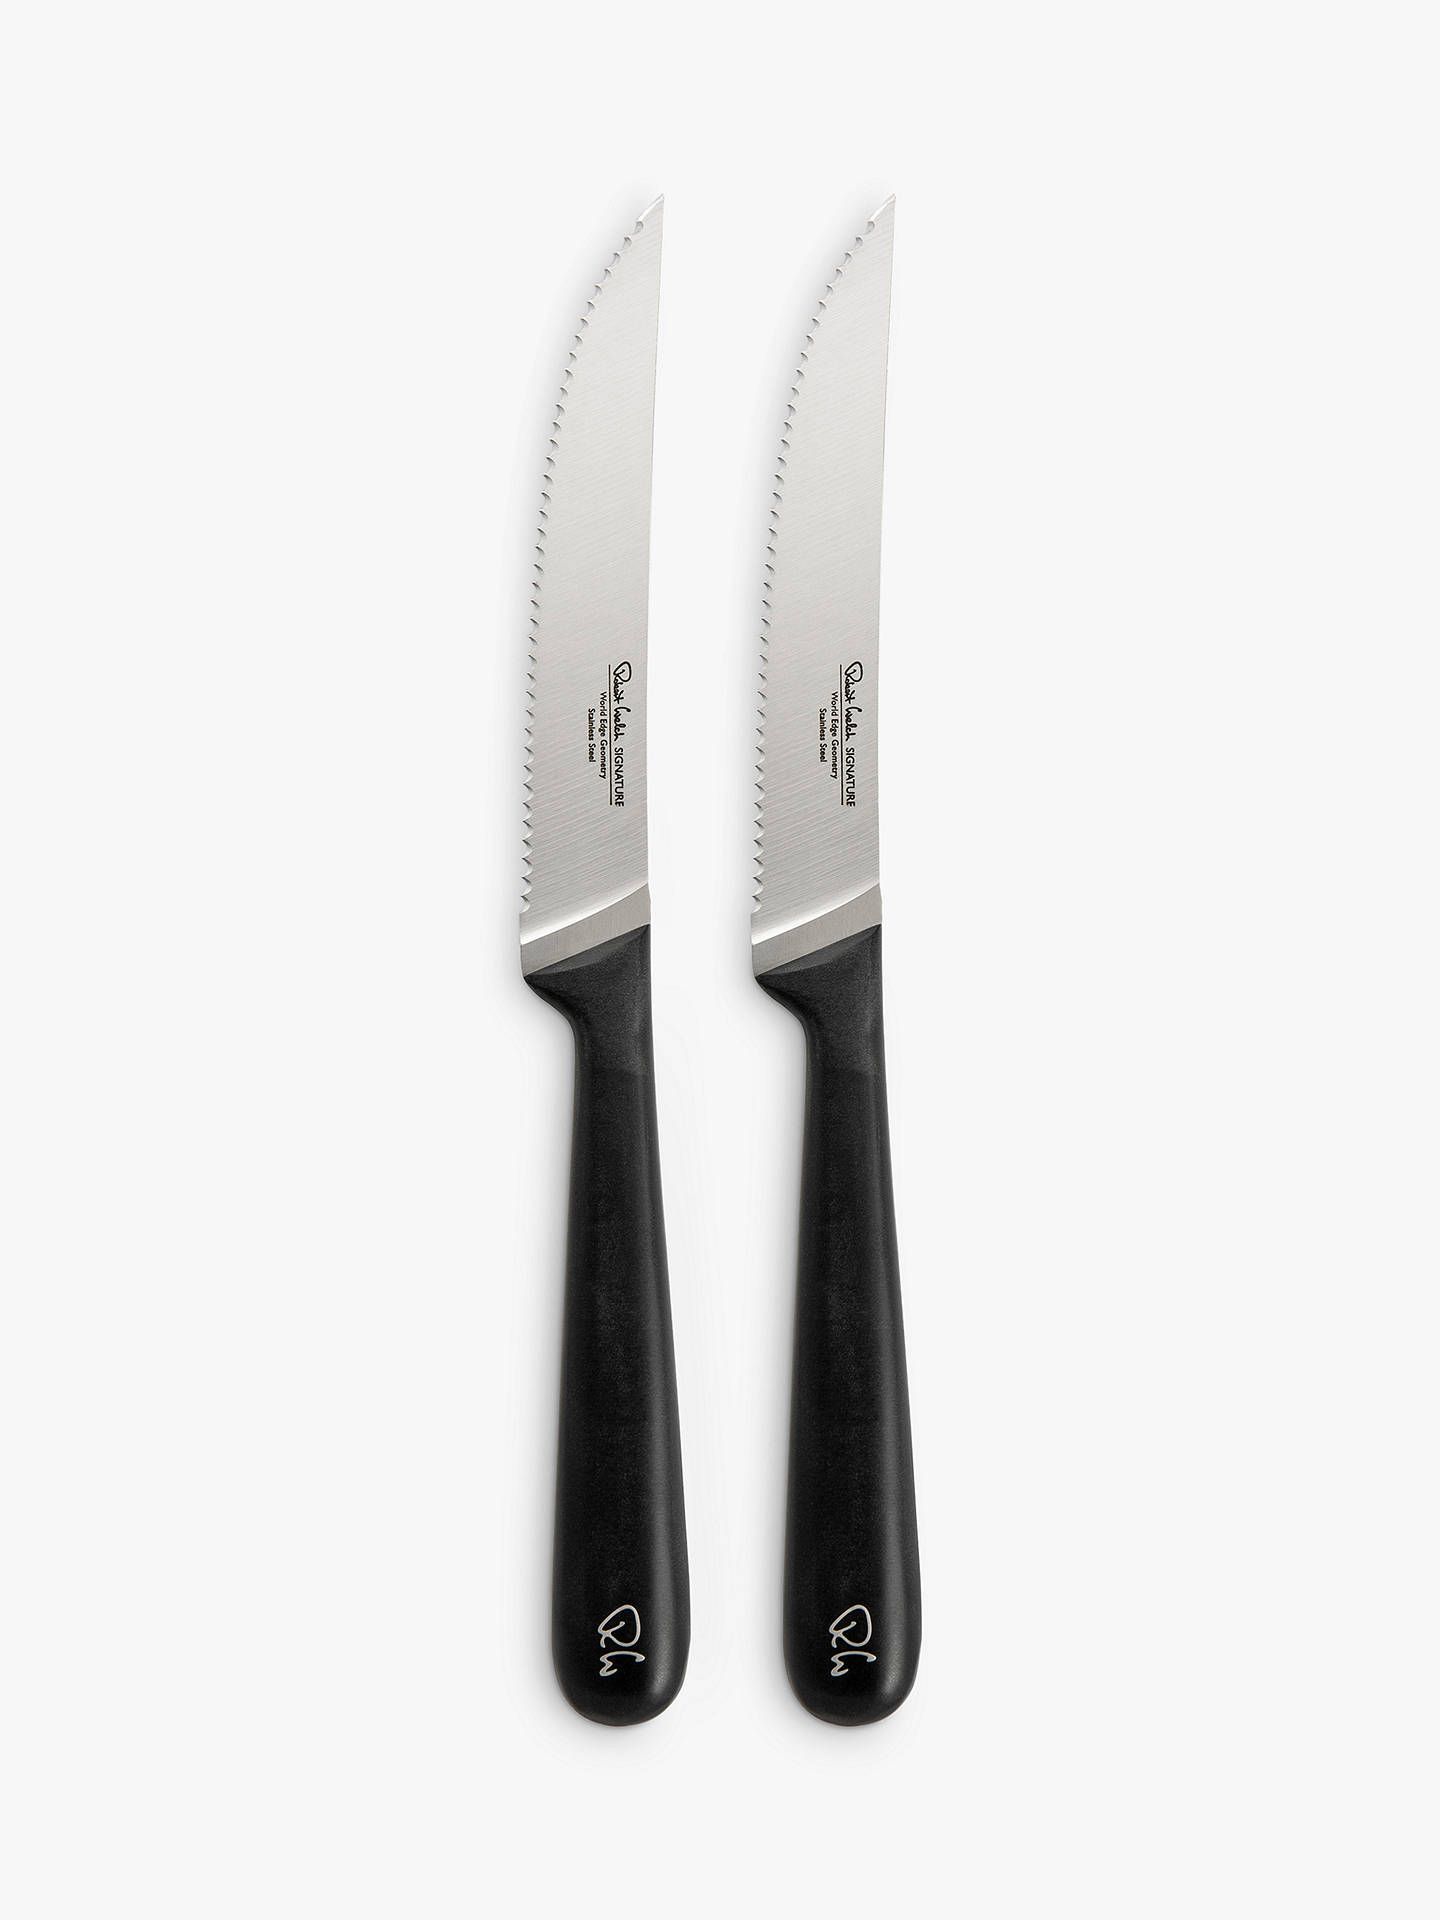 BuyRobert Welch Signature Steak Knives, Set of 2 Online at johnlewis.com